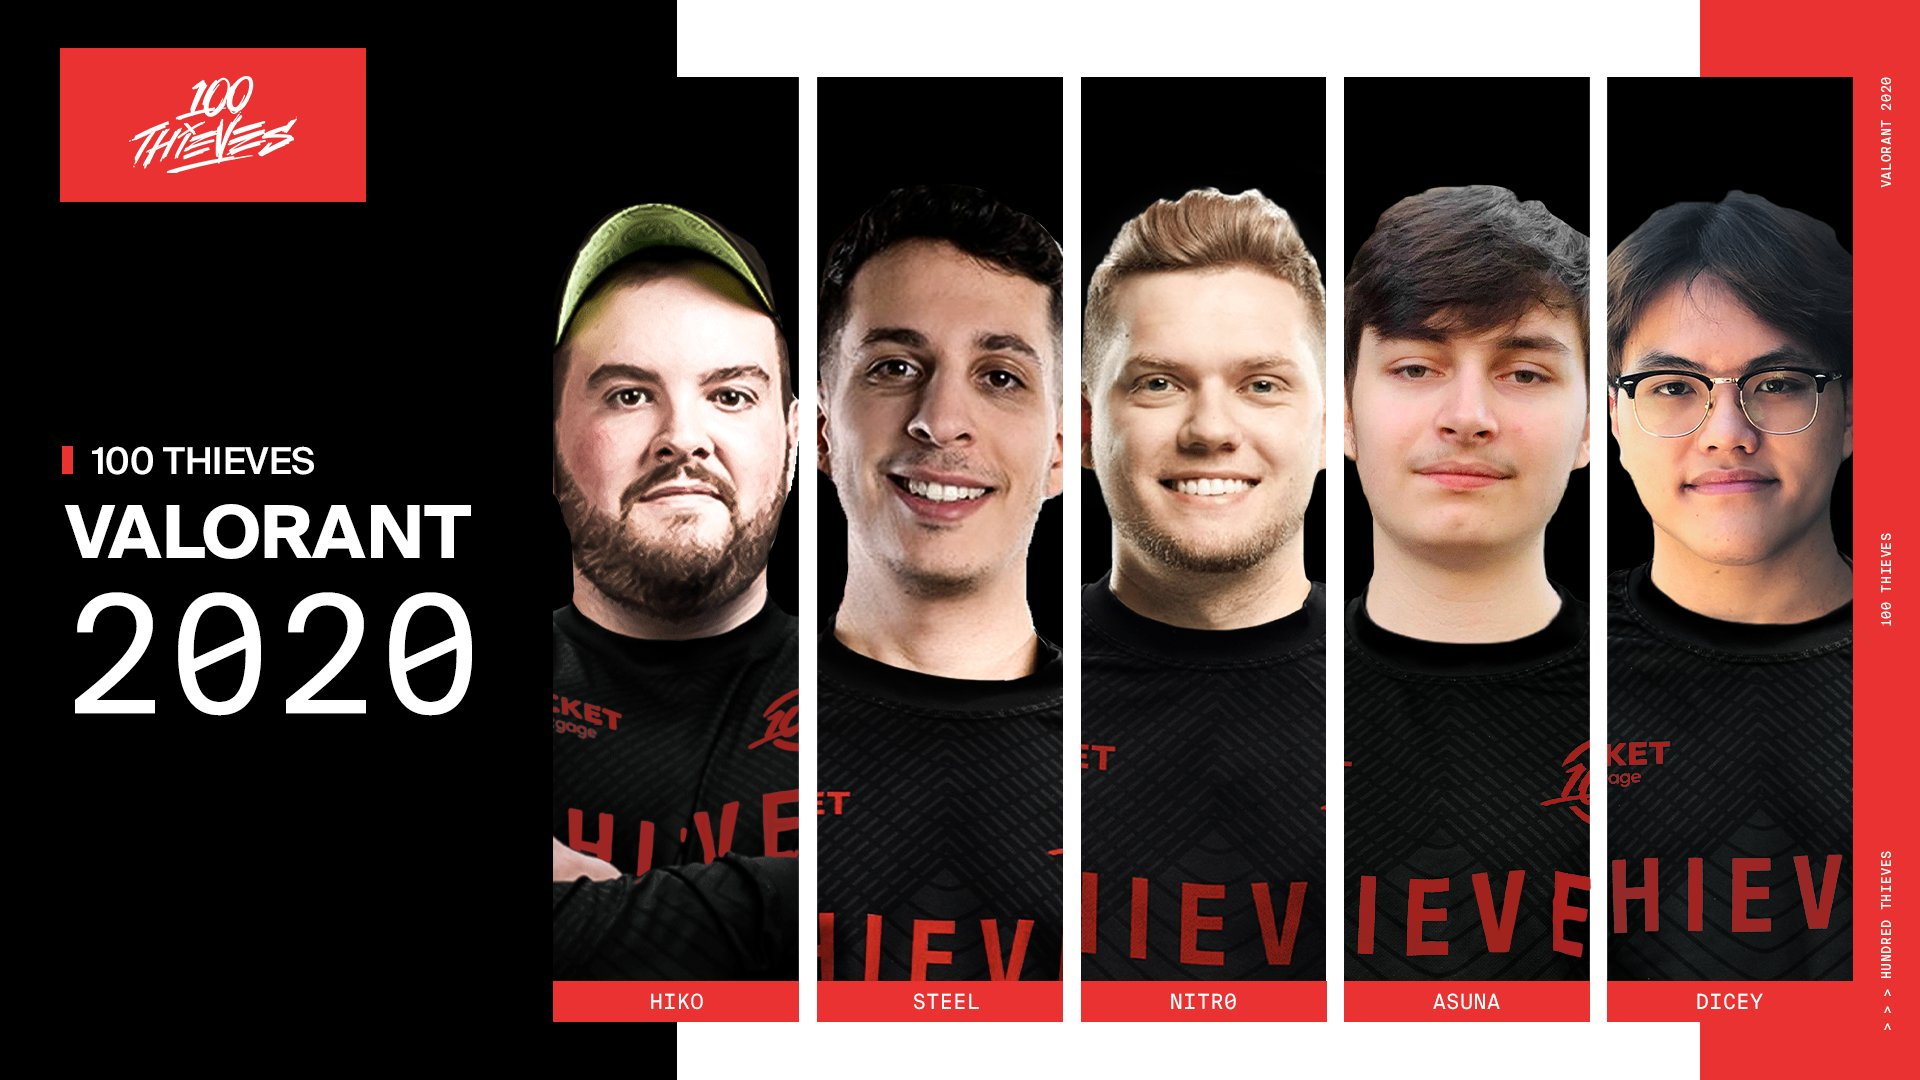 100 Thieves completes Valorant roster by adding Asuna and dicey